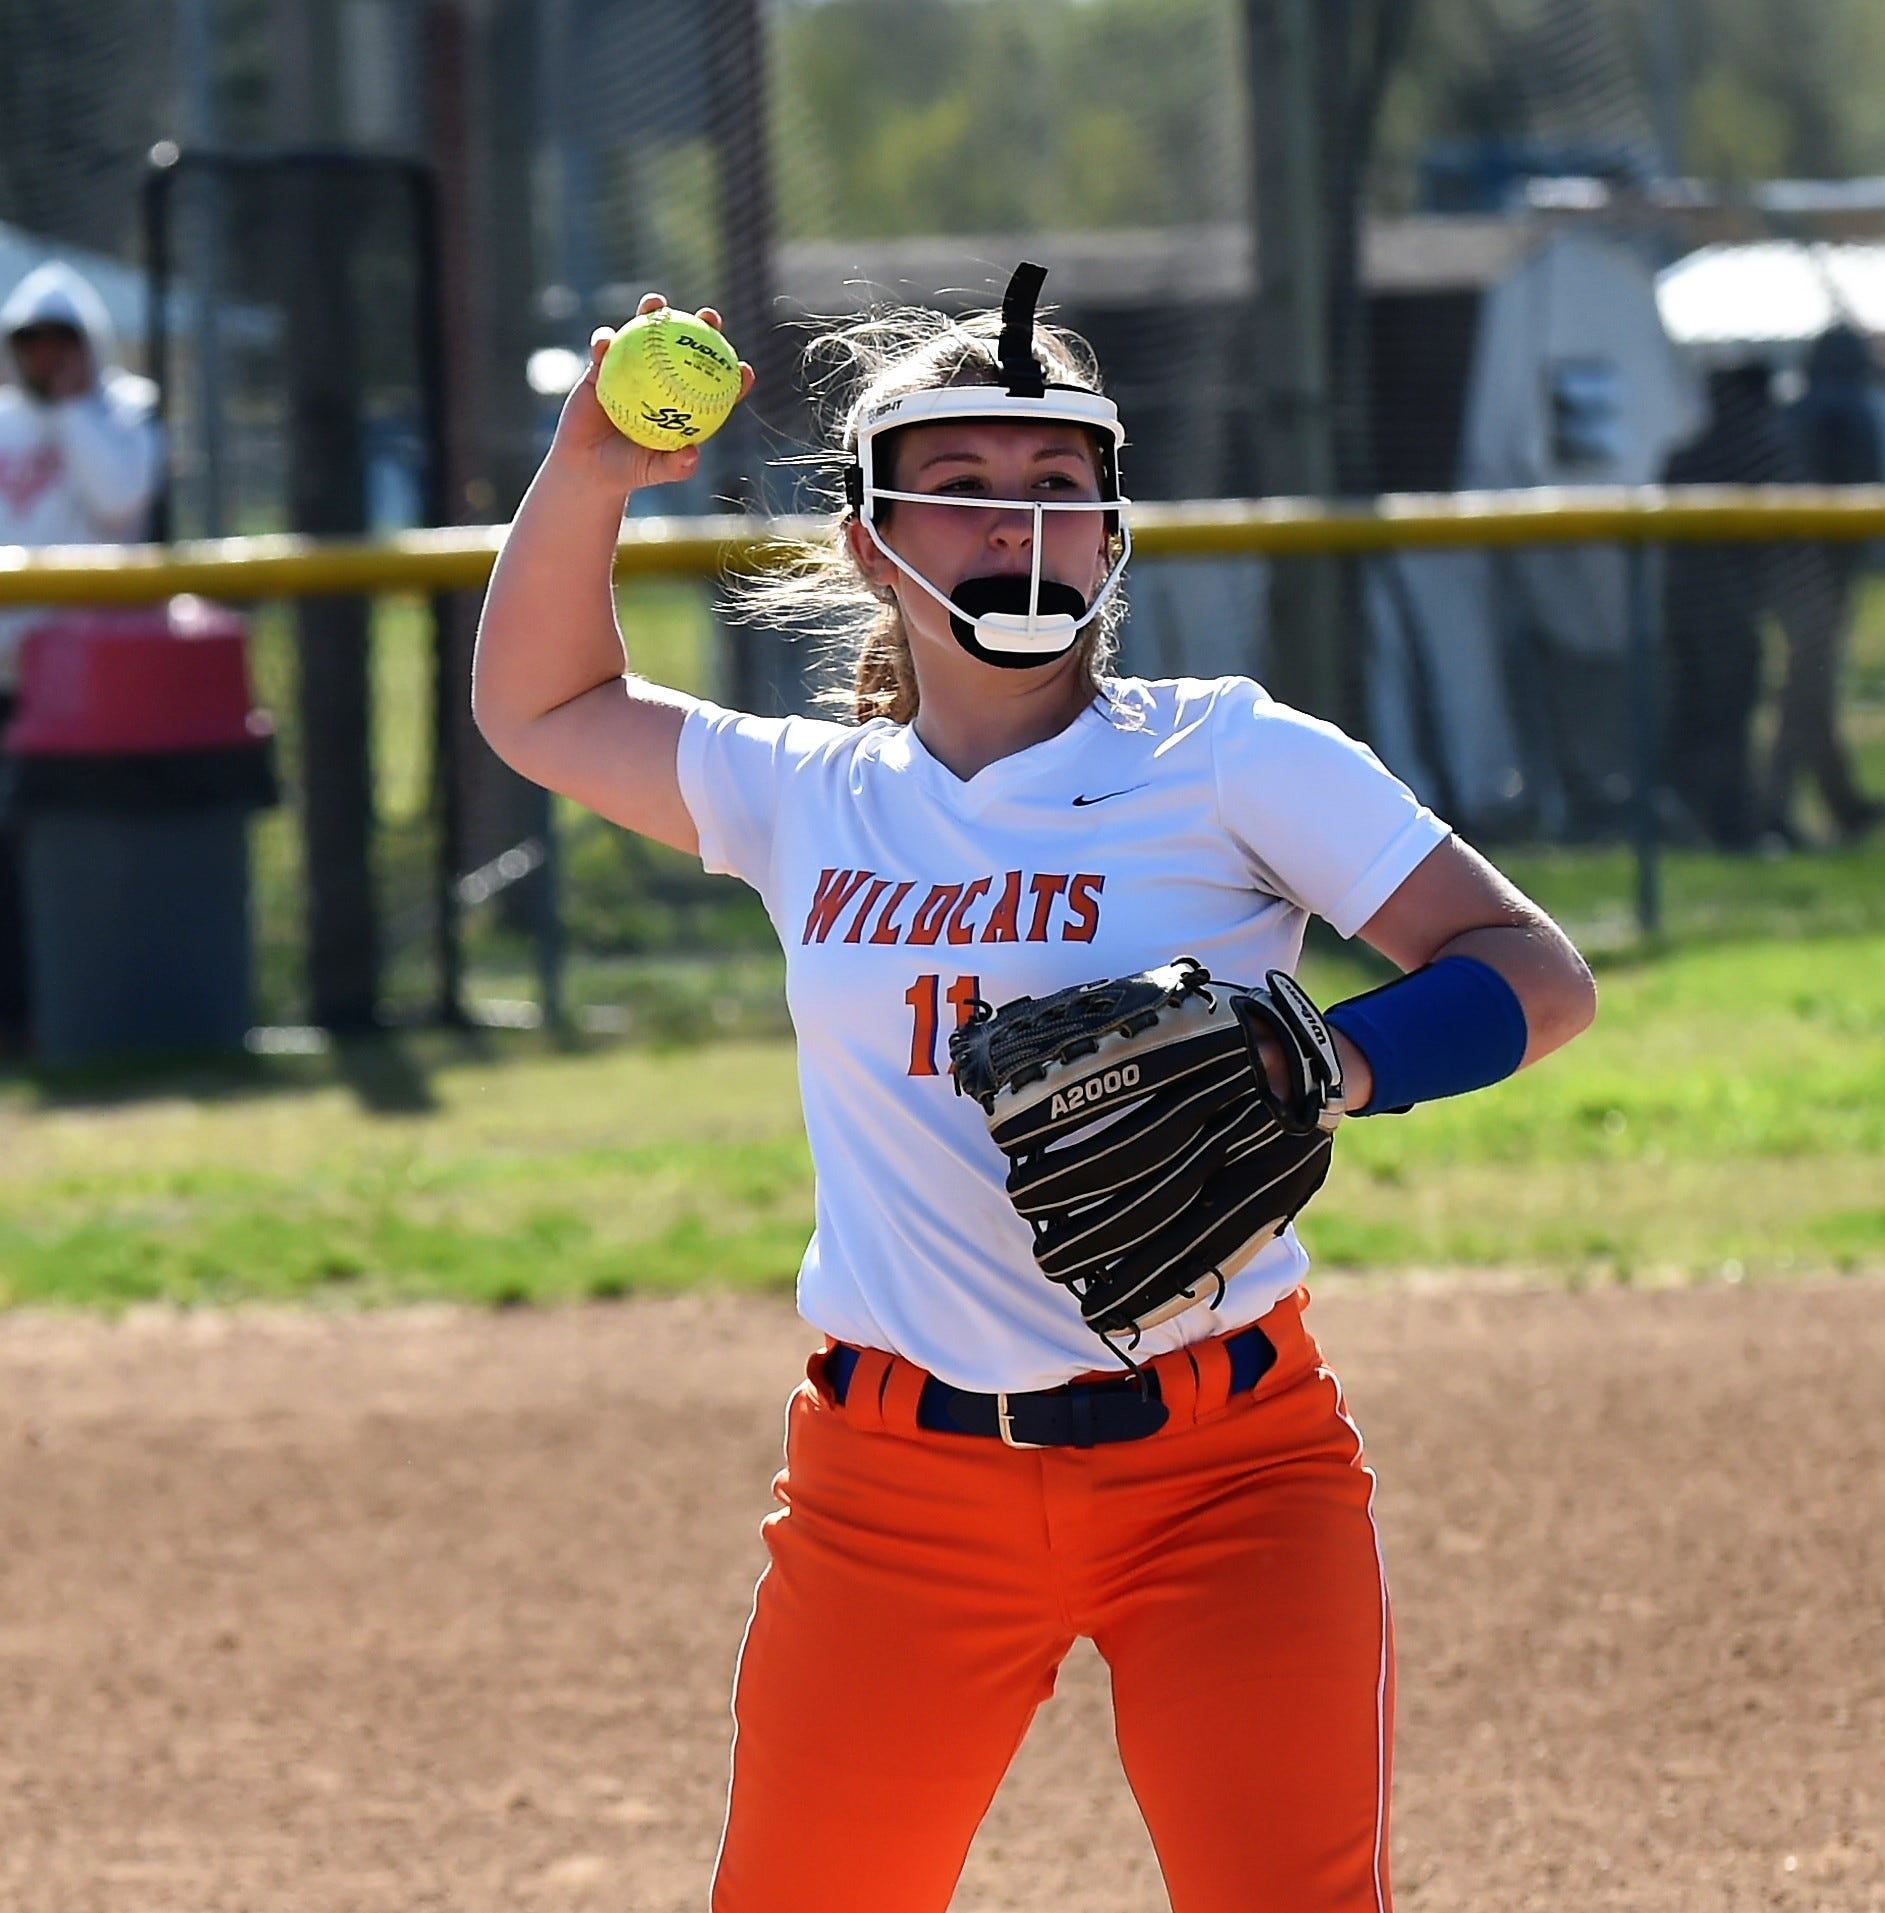 Delmar softball goes on long win streak after losing first 3 games